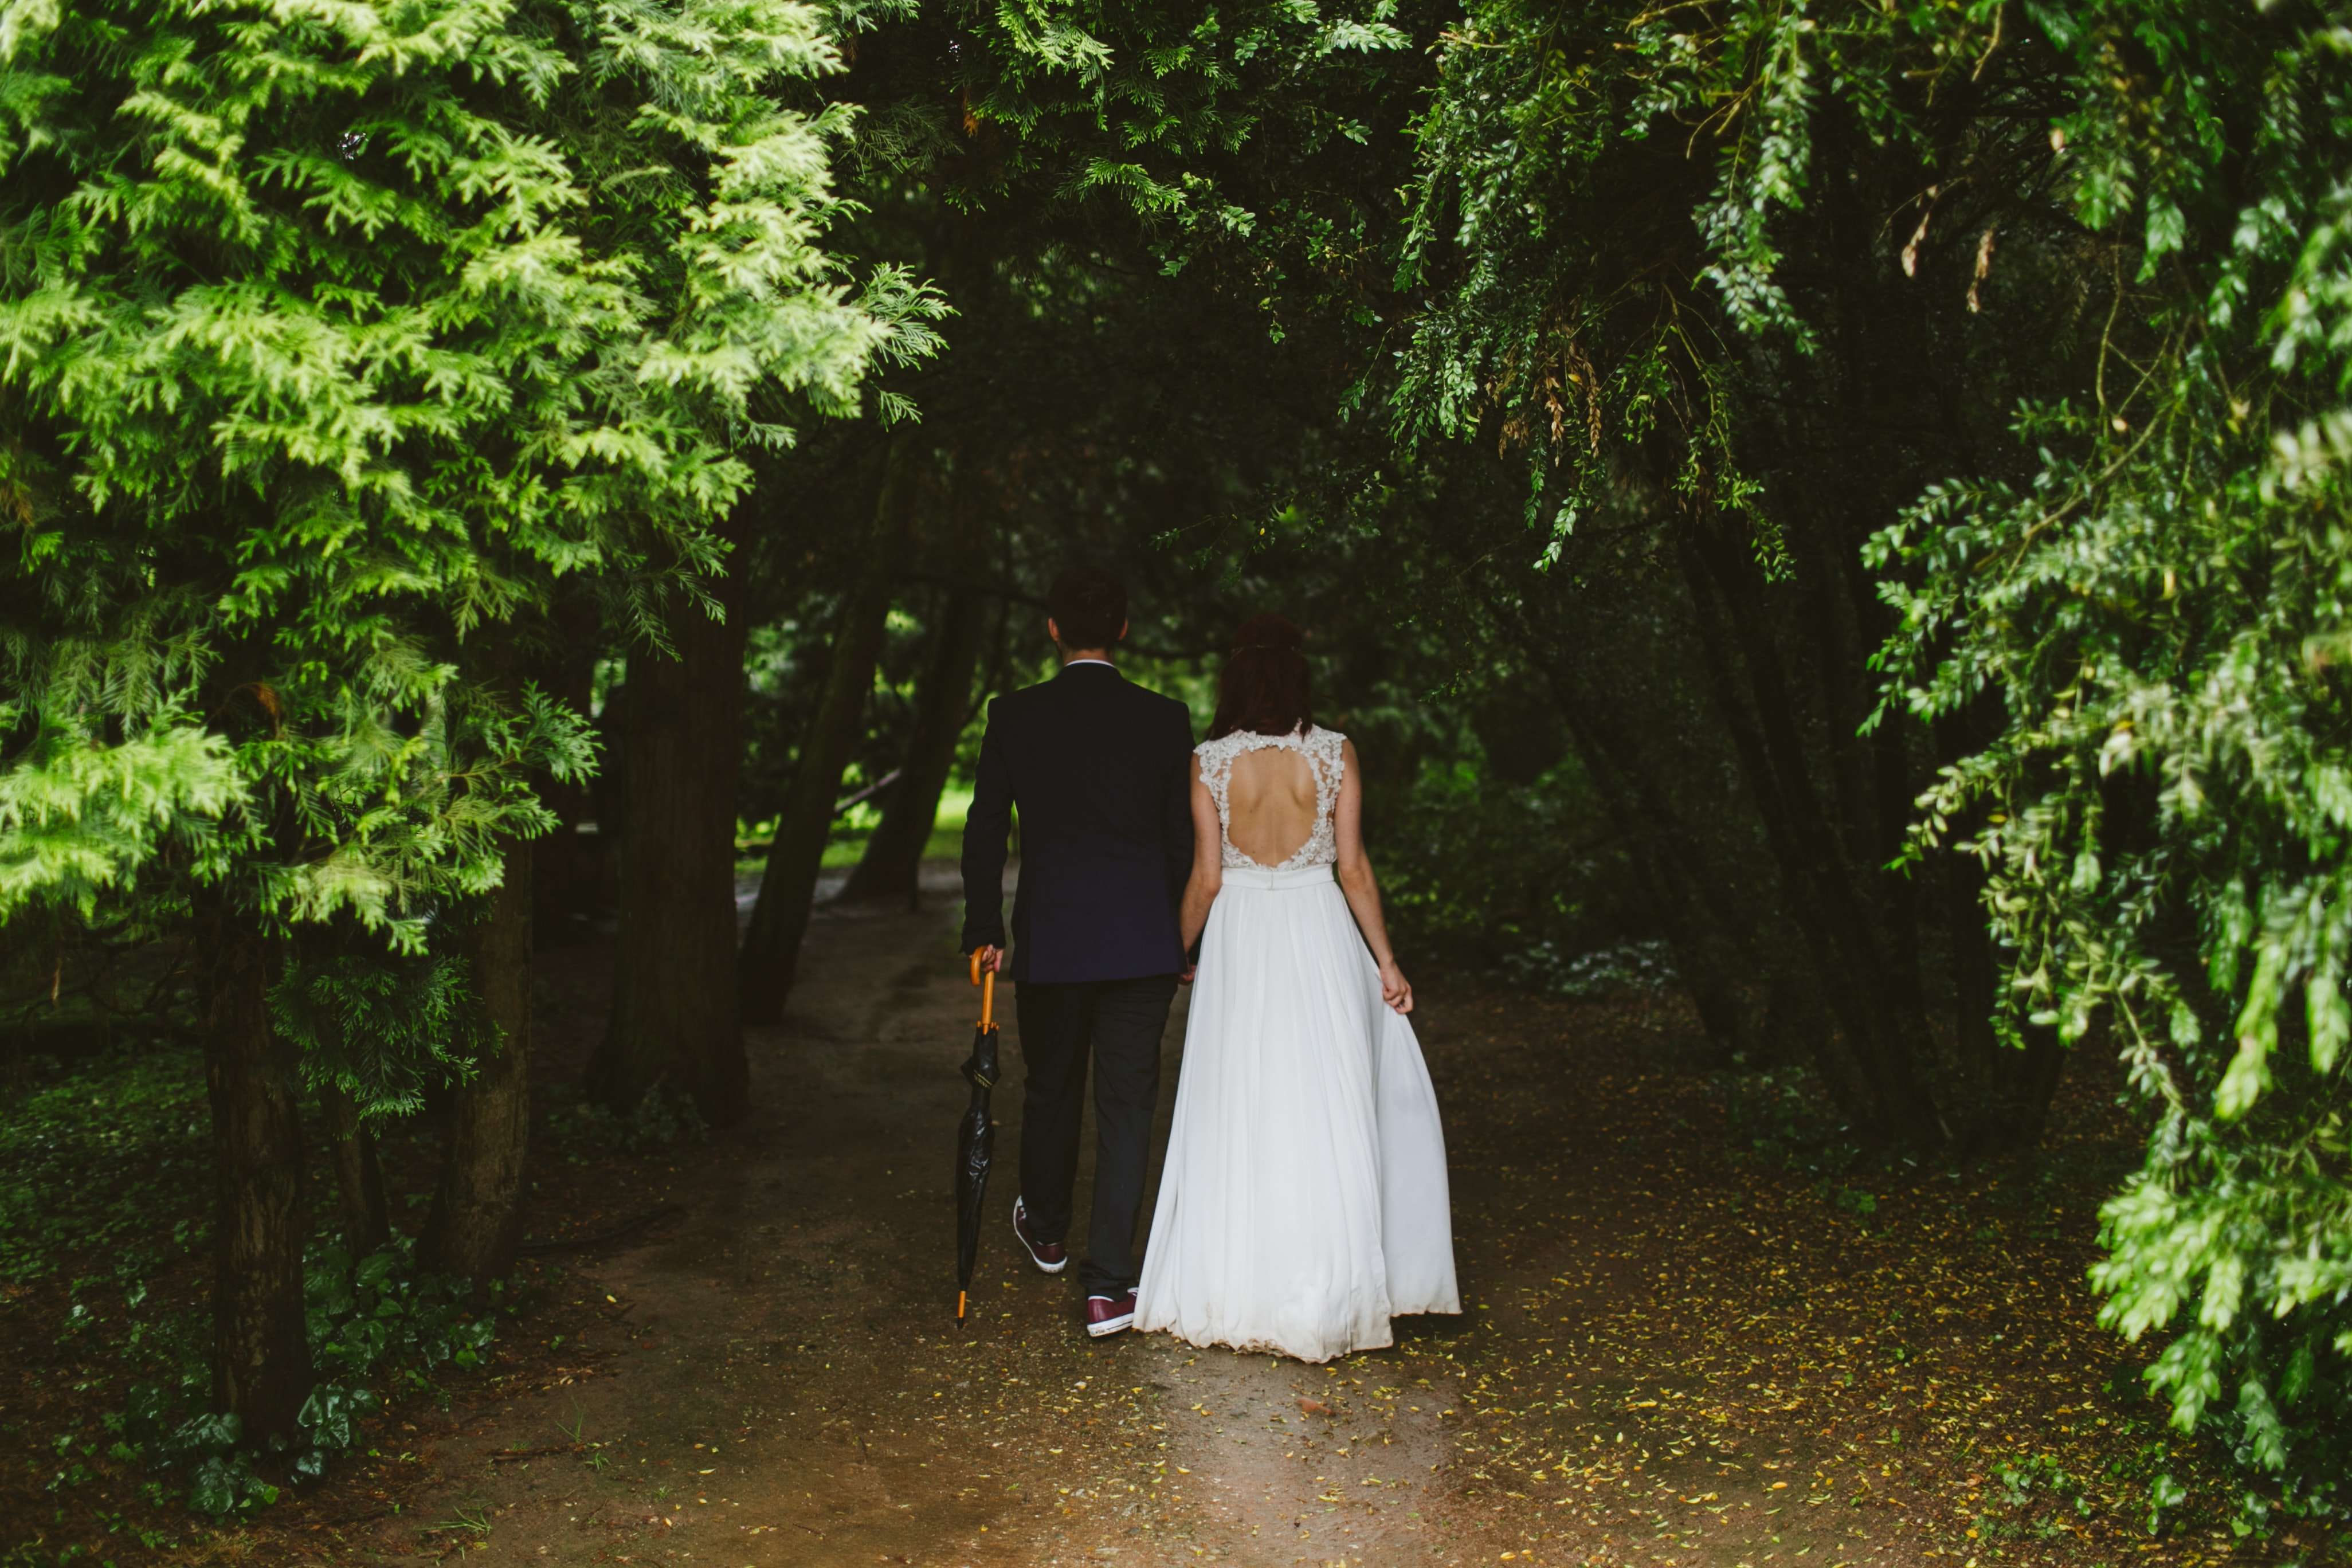 Bride and groom walking hand in hand through a shadowy path in the woods